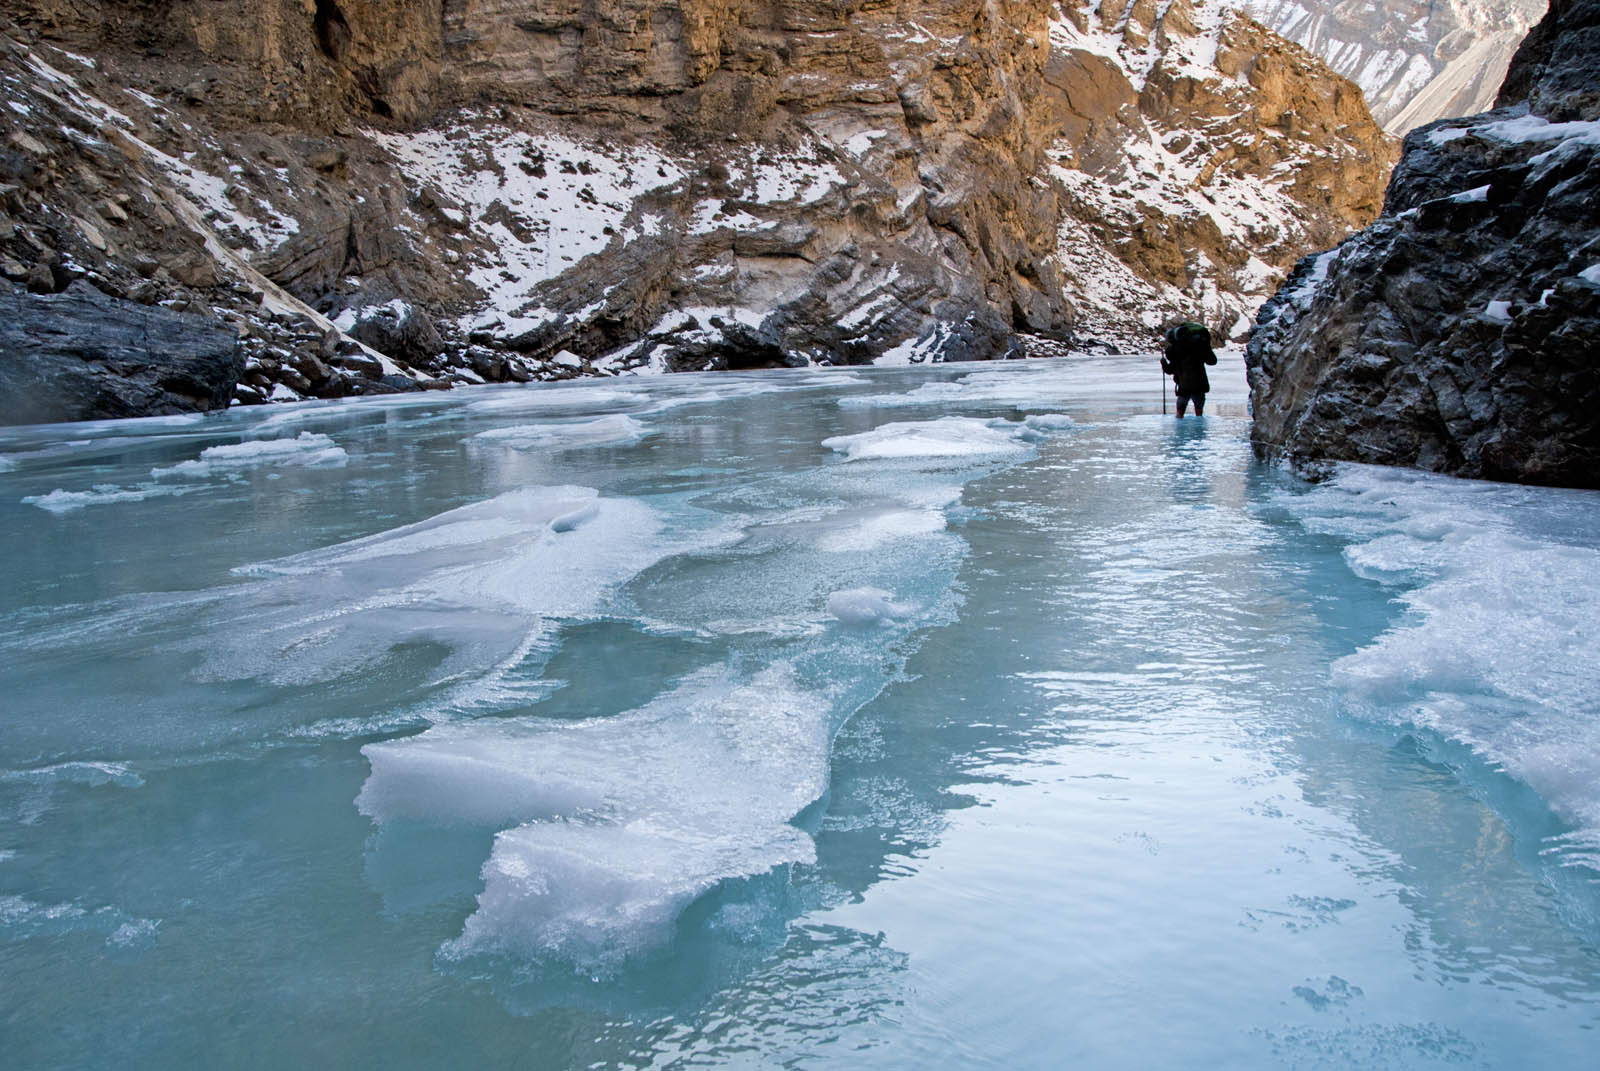 A porter ferrying a load in the Zanskar river in winter. Warm weather had forced water over the normally frozen layer of ice.